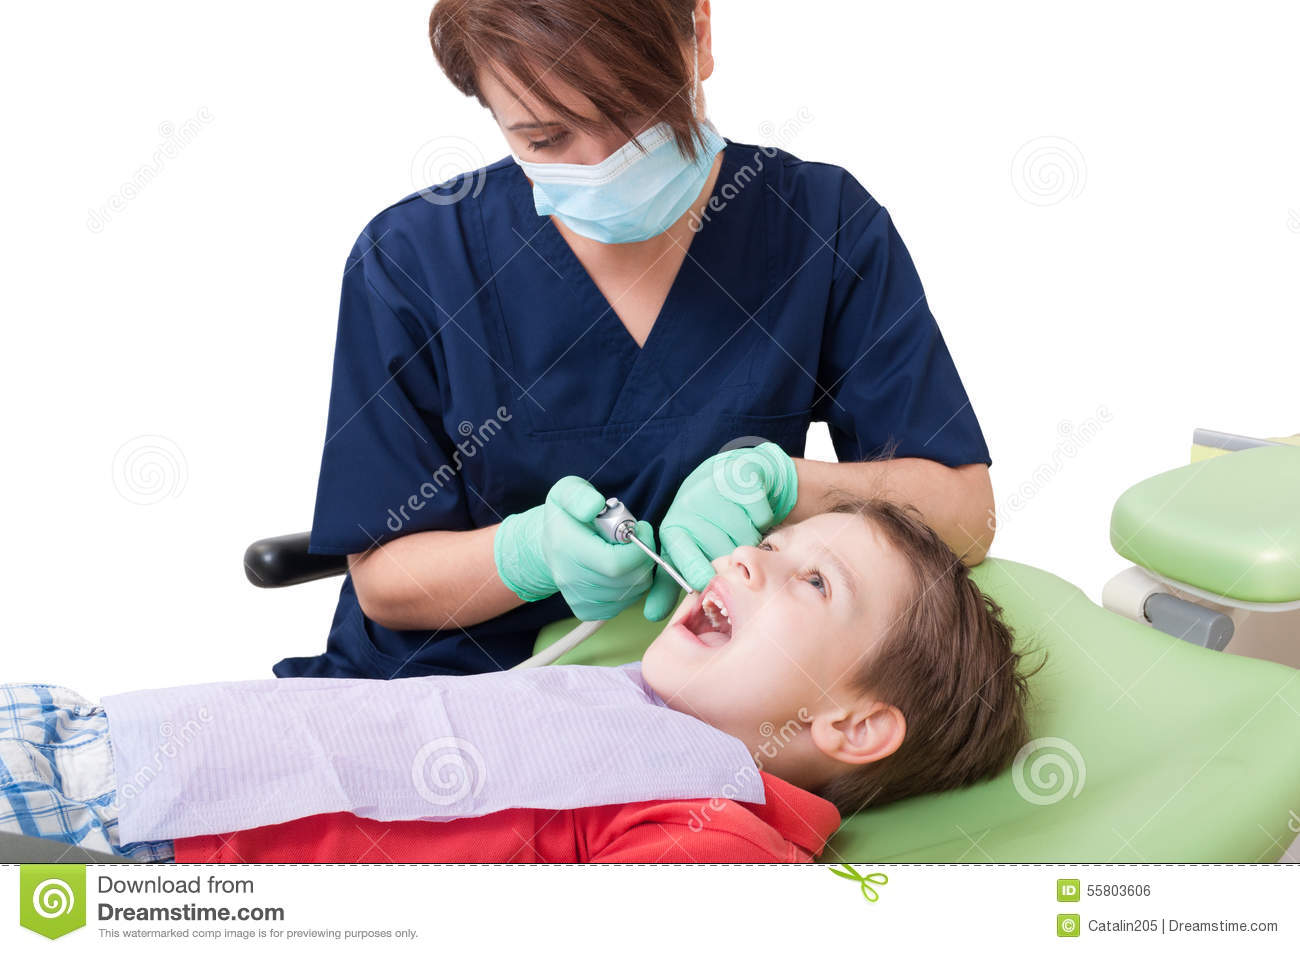 Relaxed kid on dentist chair with women doctor at periodic checkup